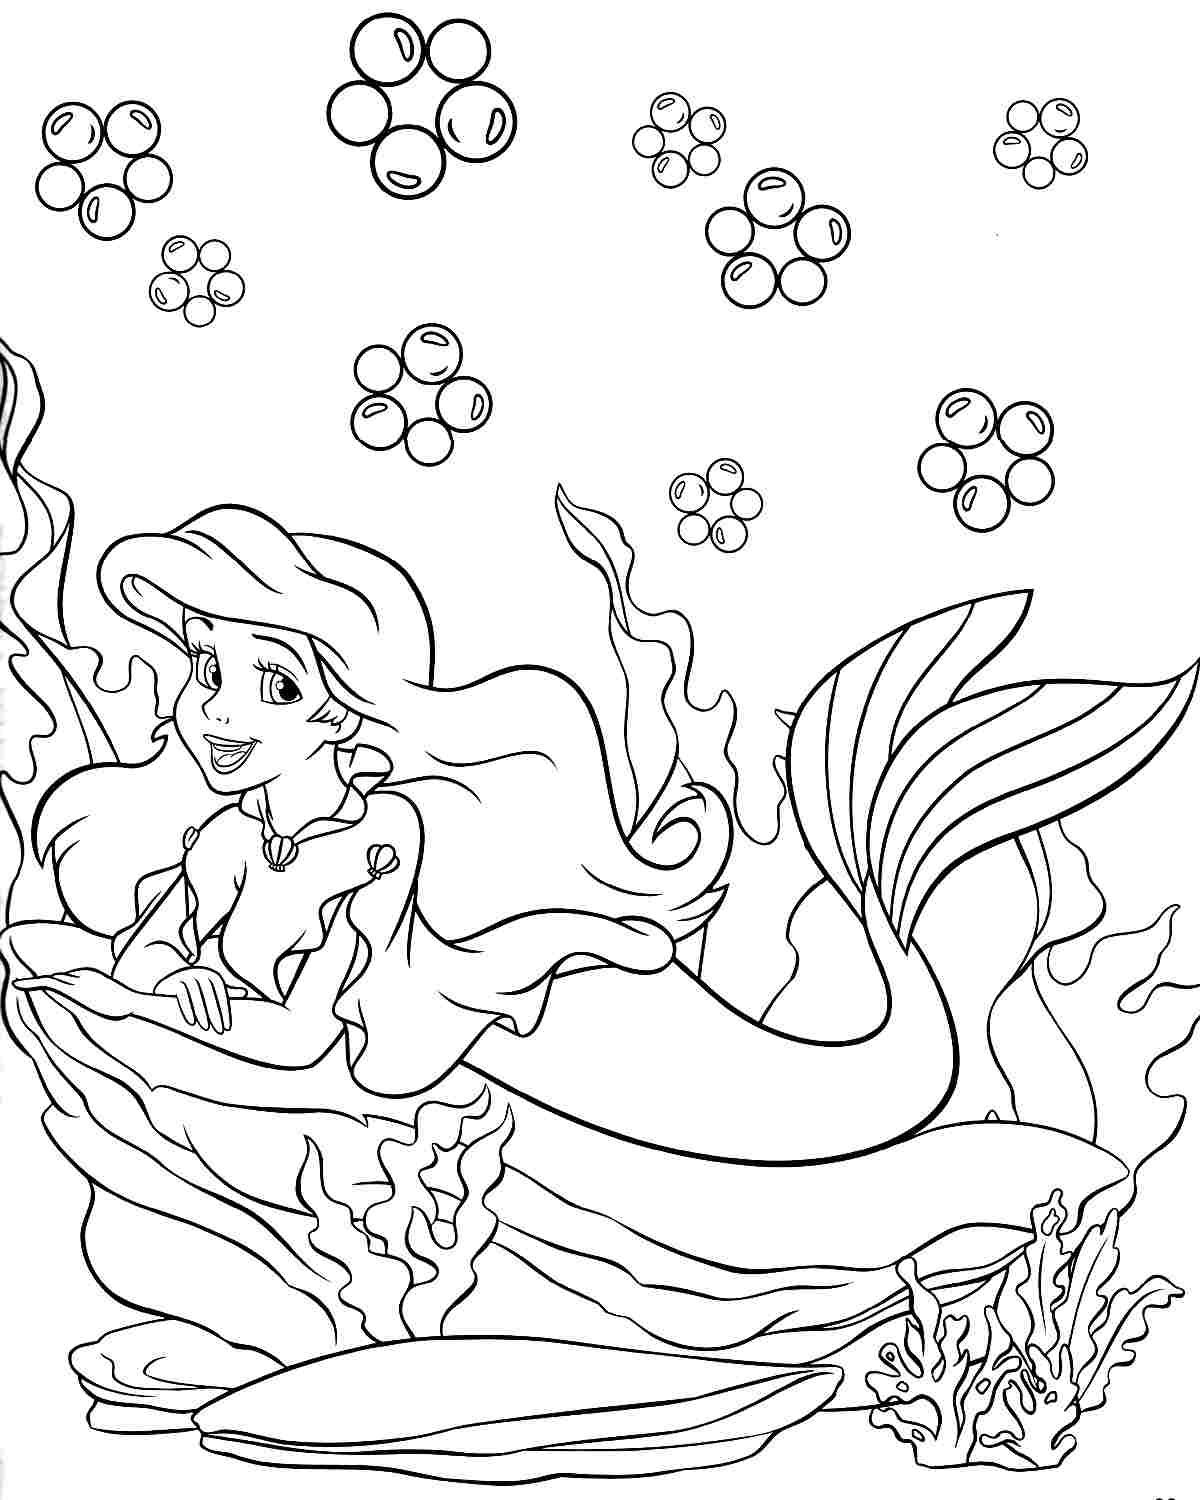 Pin by Yooper Girl on Color - Sea/Mermaid | Disney ... | free printable disney princess christmas coloring pages